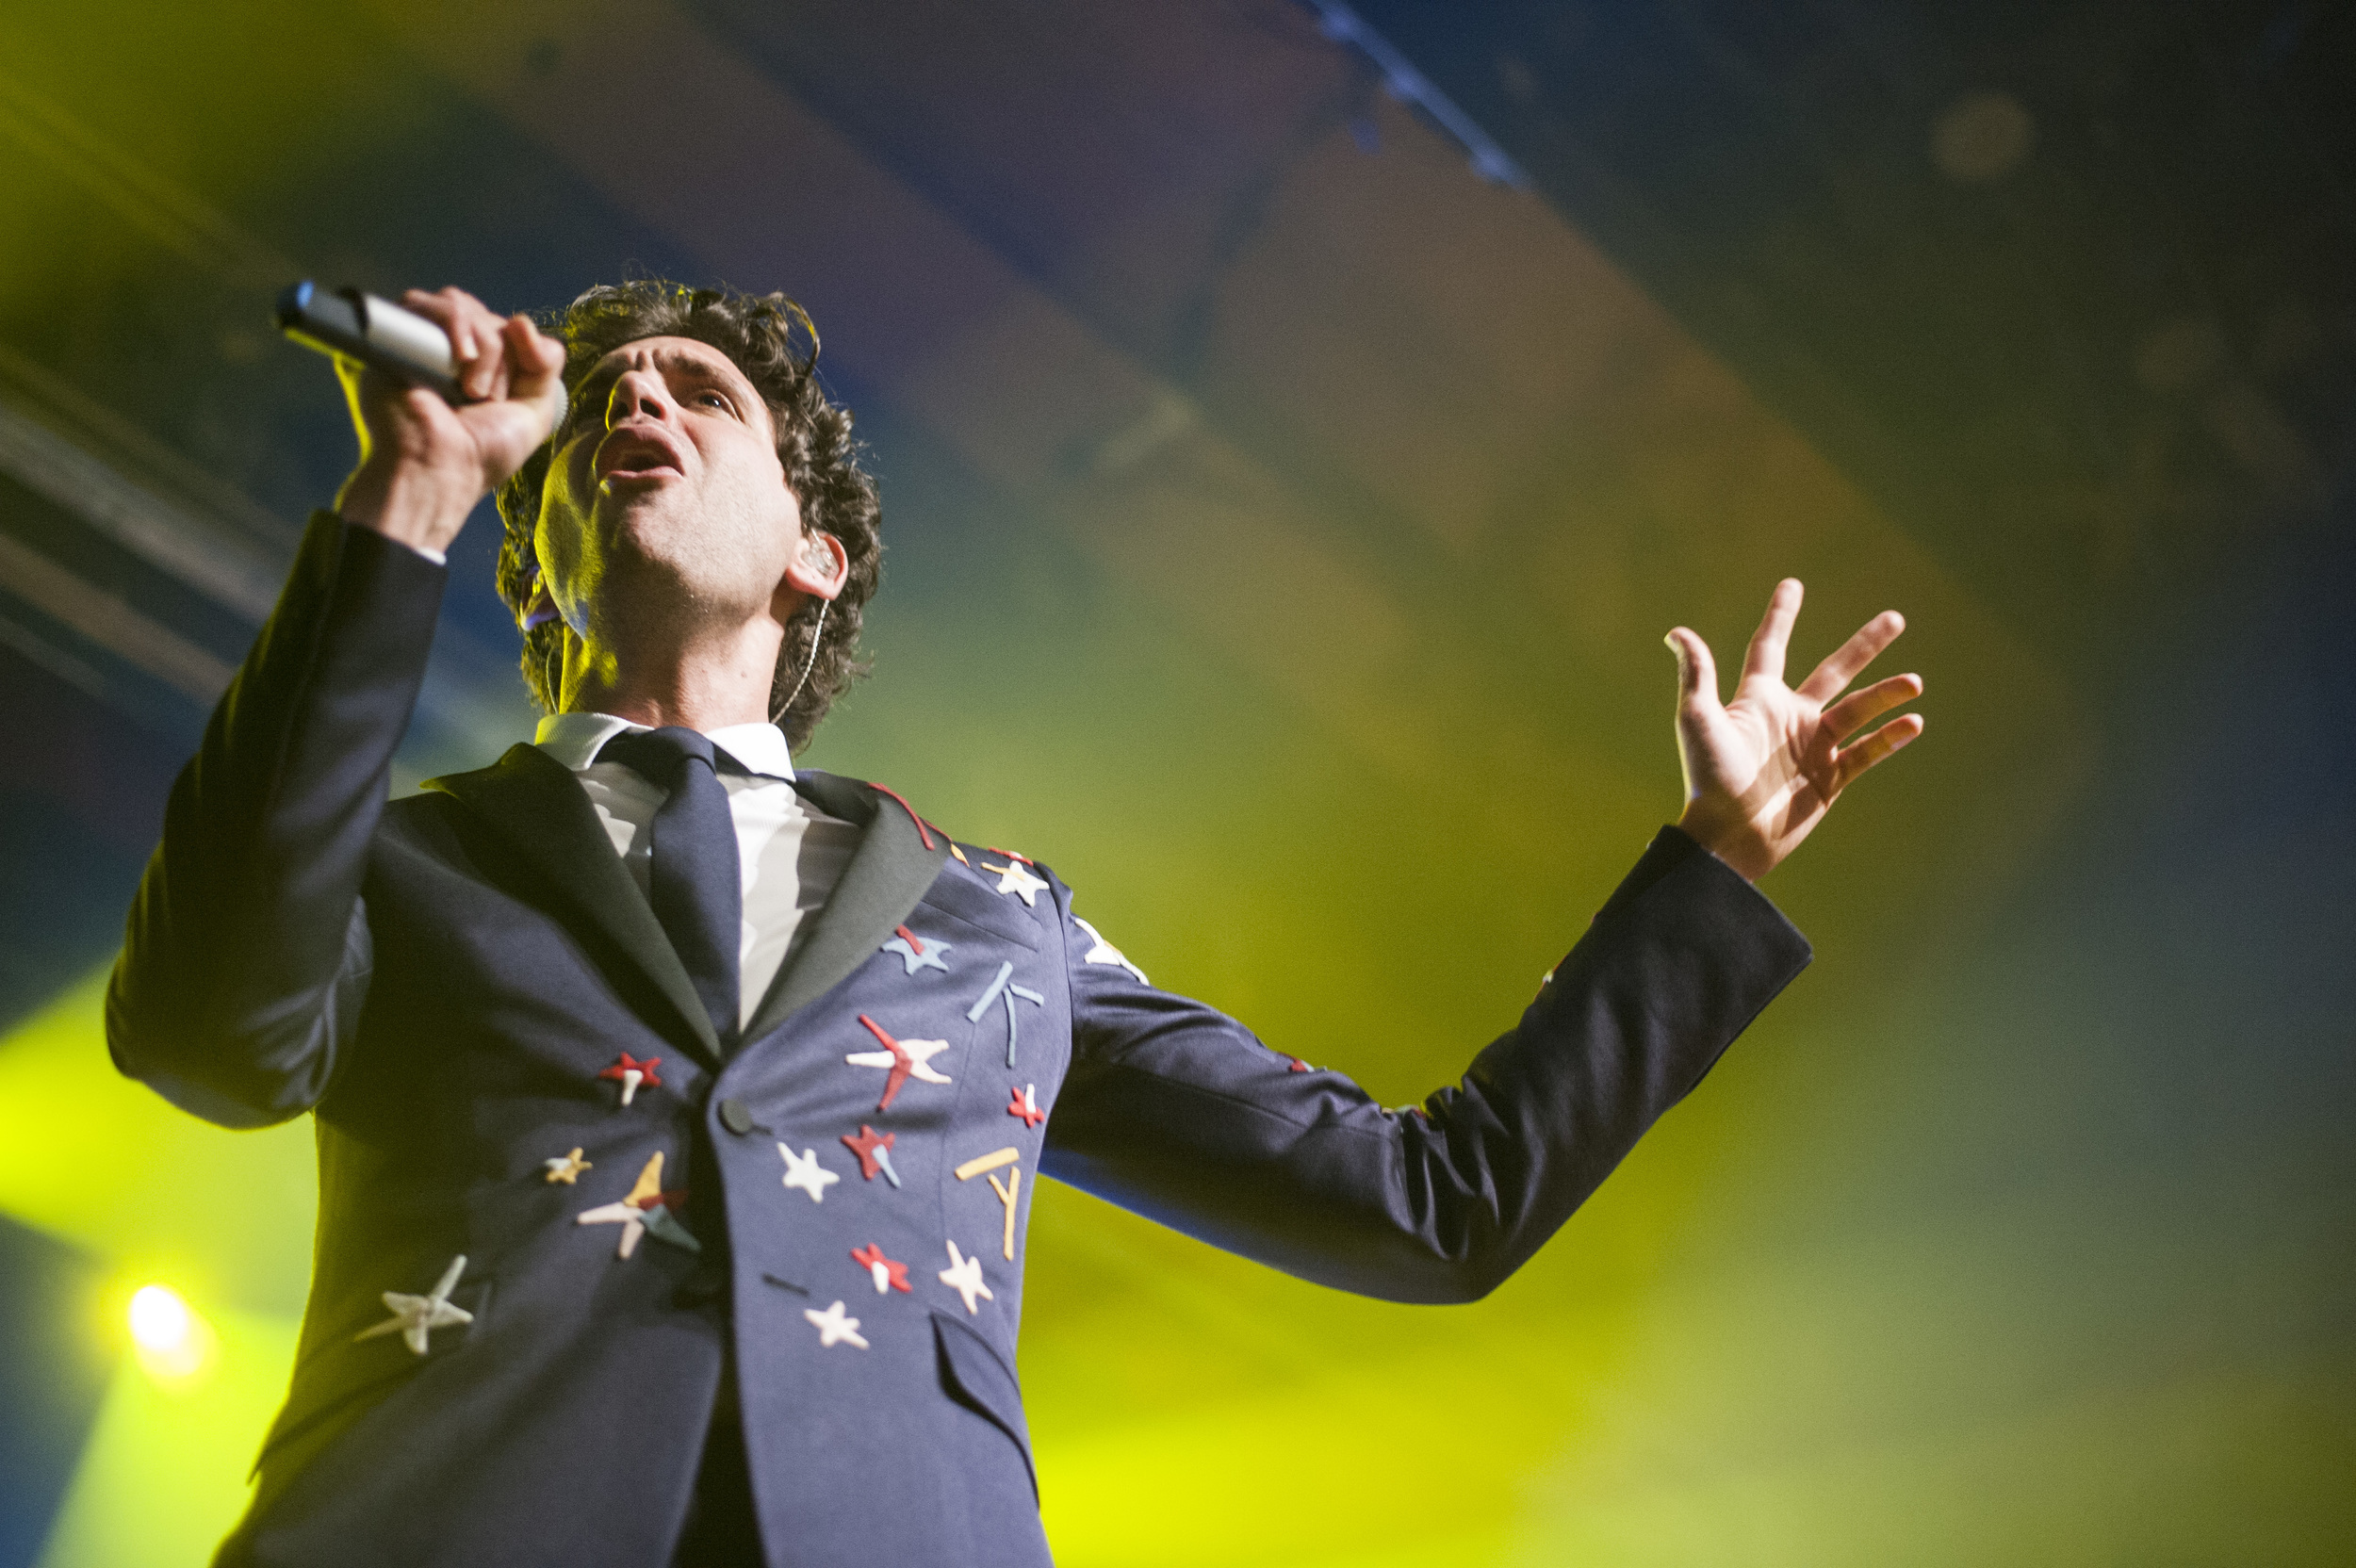 MIKA at Webster Hall